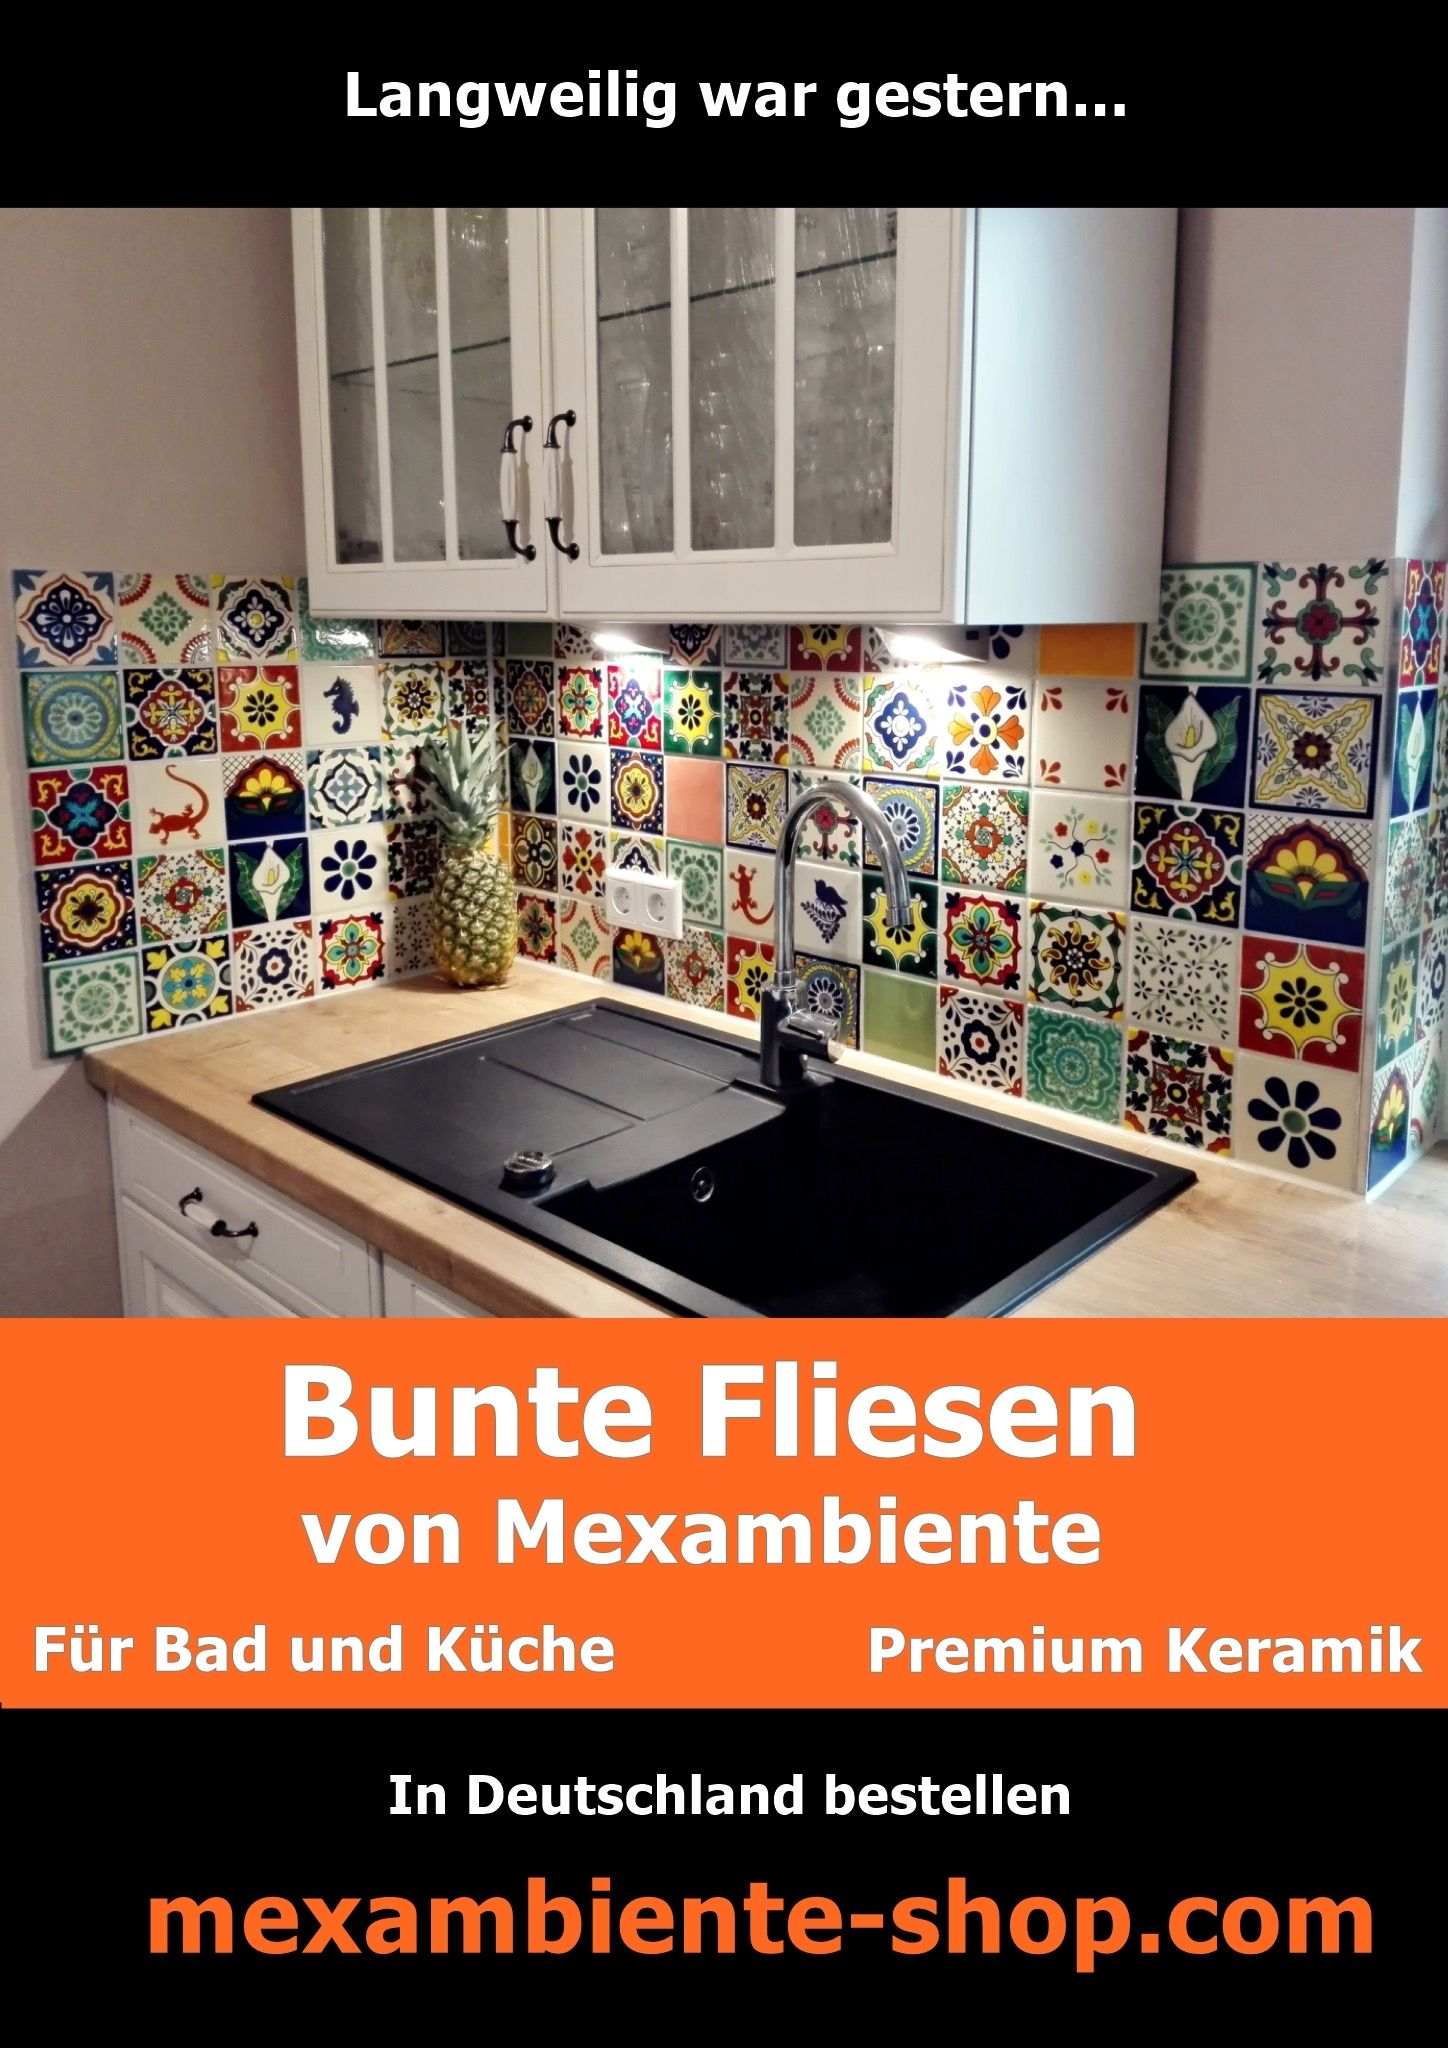 bunte fliesen f r die k che warme farben und motive aus der natur gegriffen handbemalte. Black Bedroom Furniture Sets. Home Design Ideas